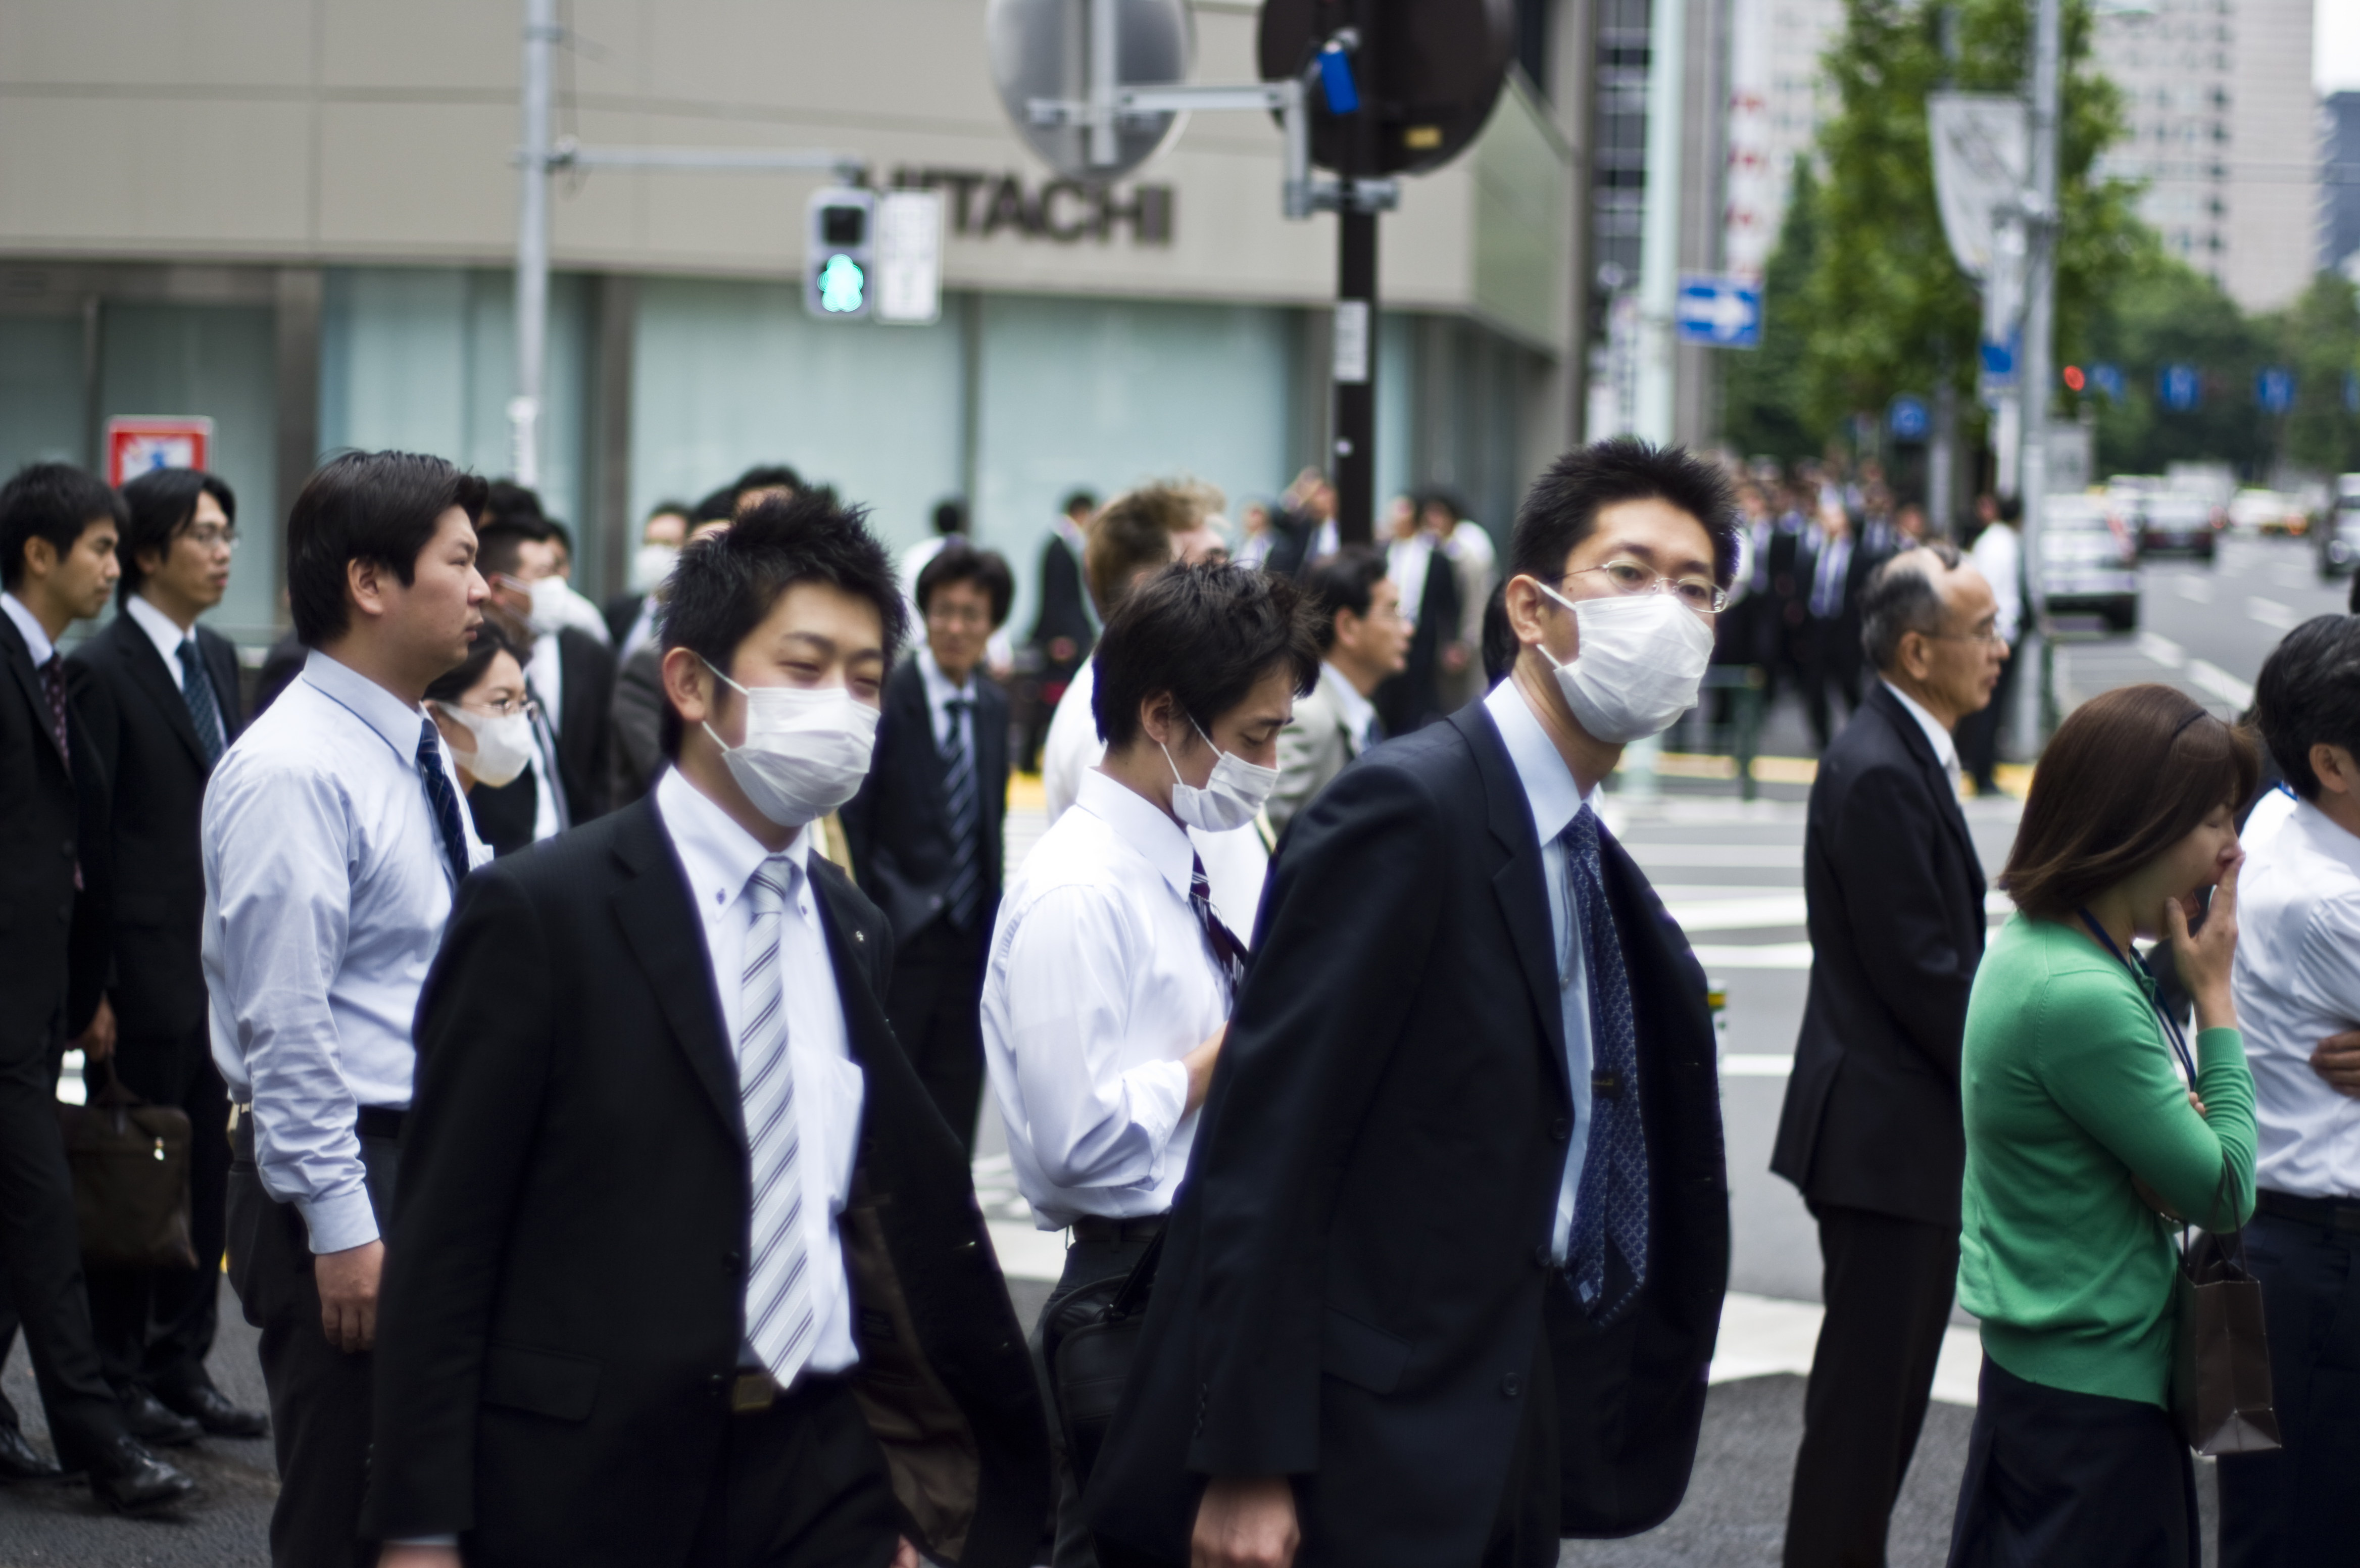 CDC Director on 'Contagion': Deadly Viruses Could Spread Fast ...